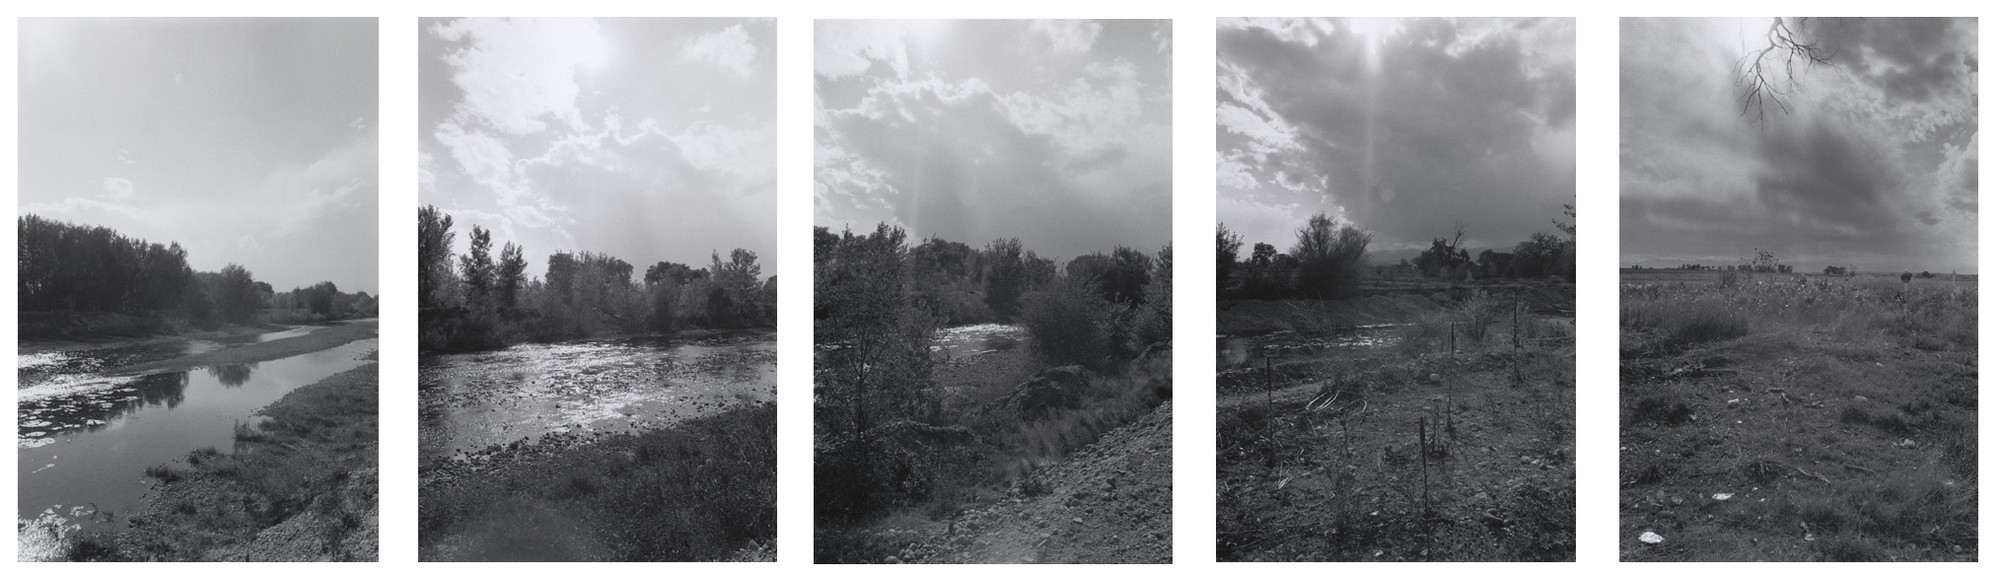 Robert Adams. Along St. Vrain Creek, West of Longmont, Colorado. 1986